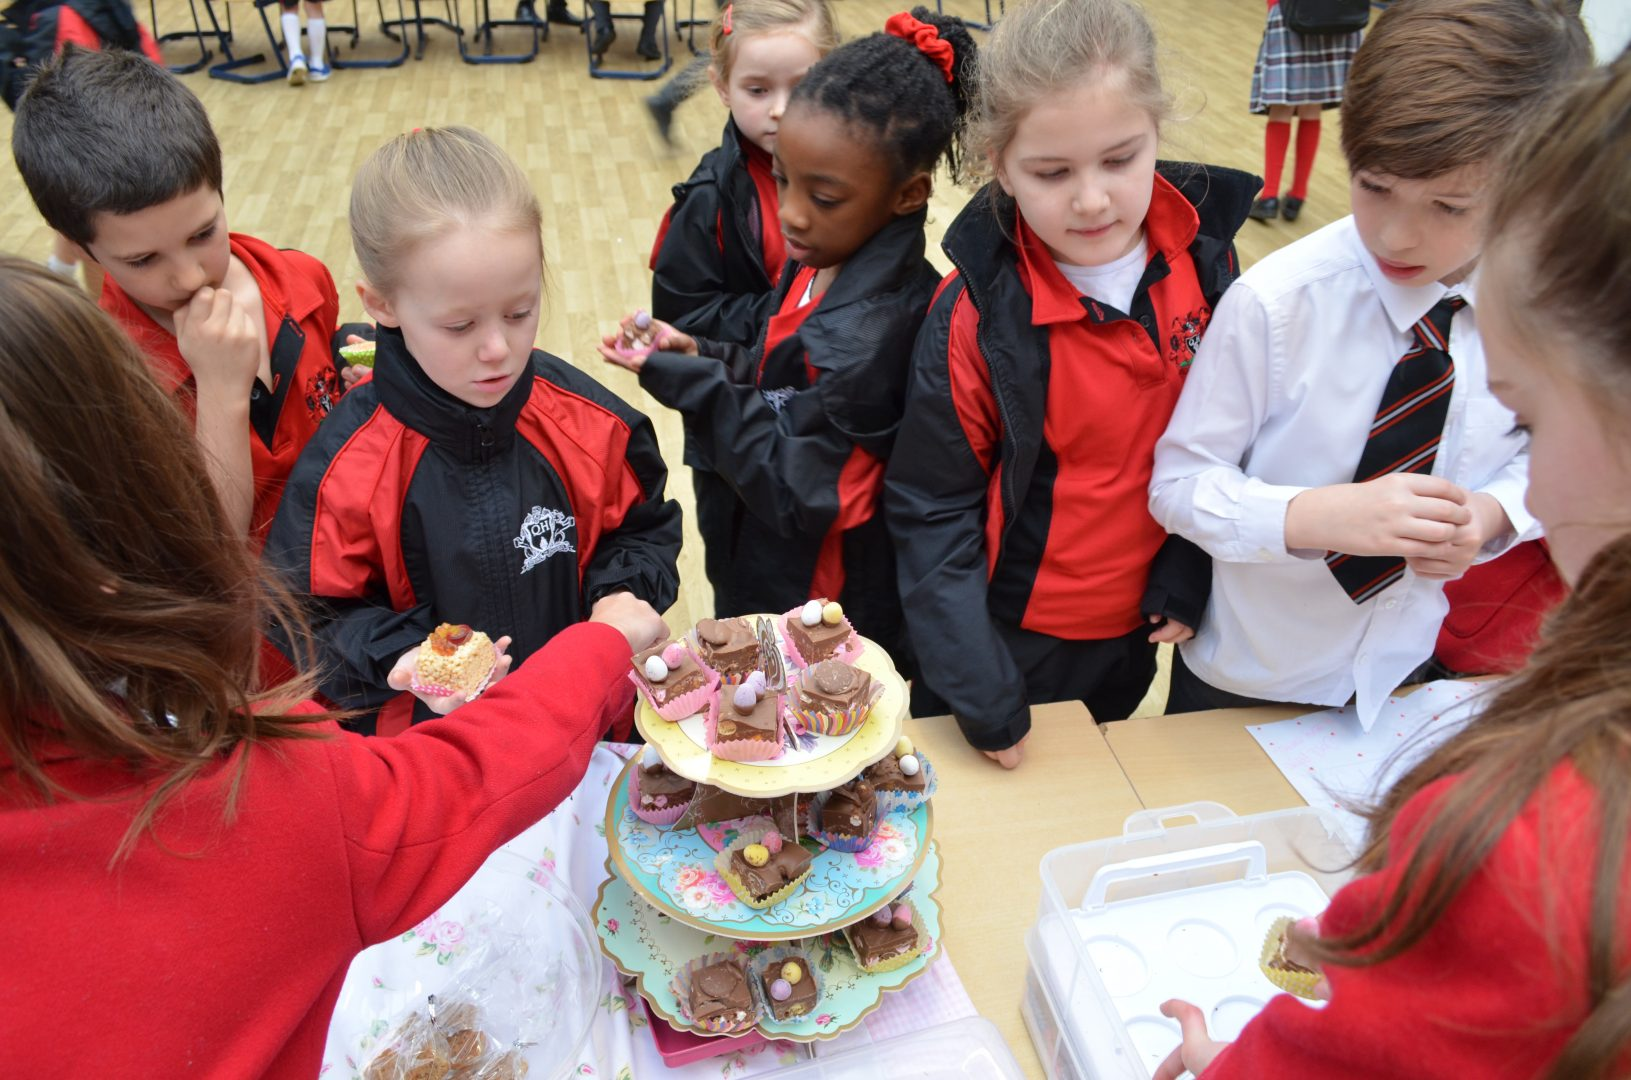 QHS students enjoy different selection of cakes